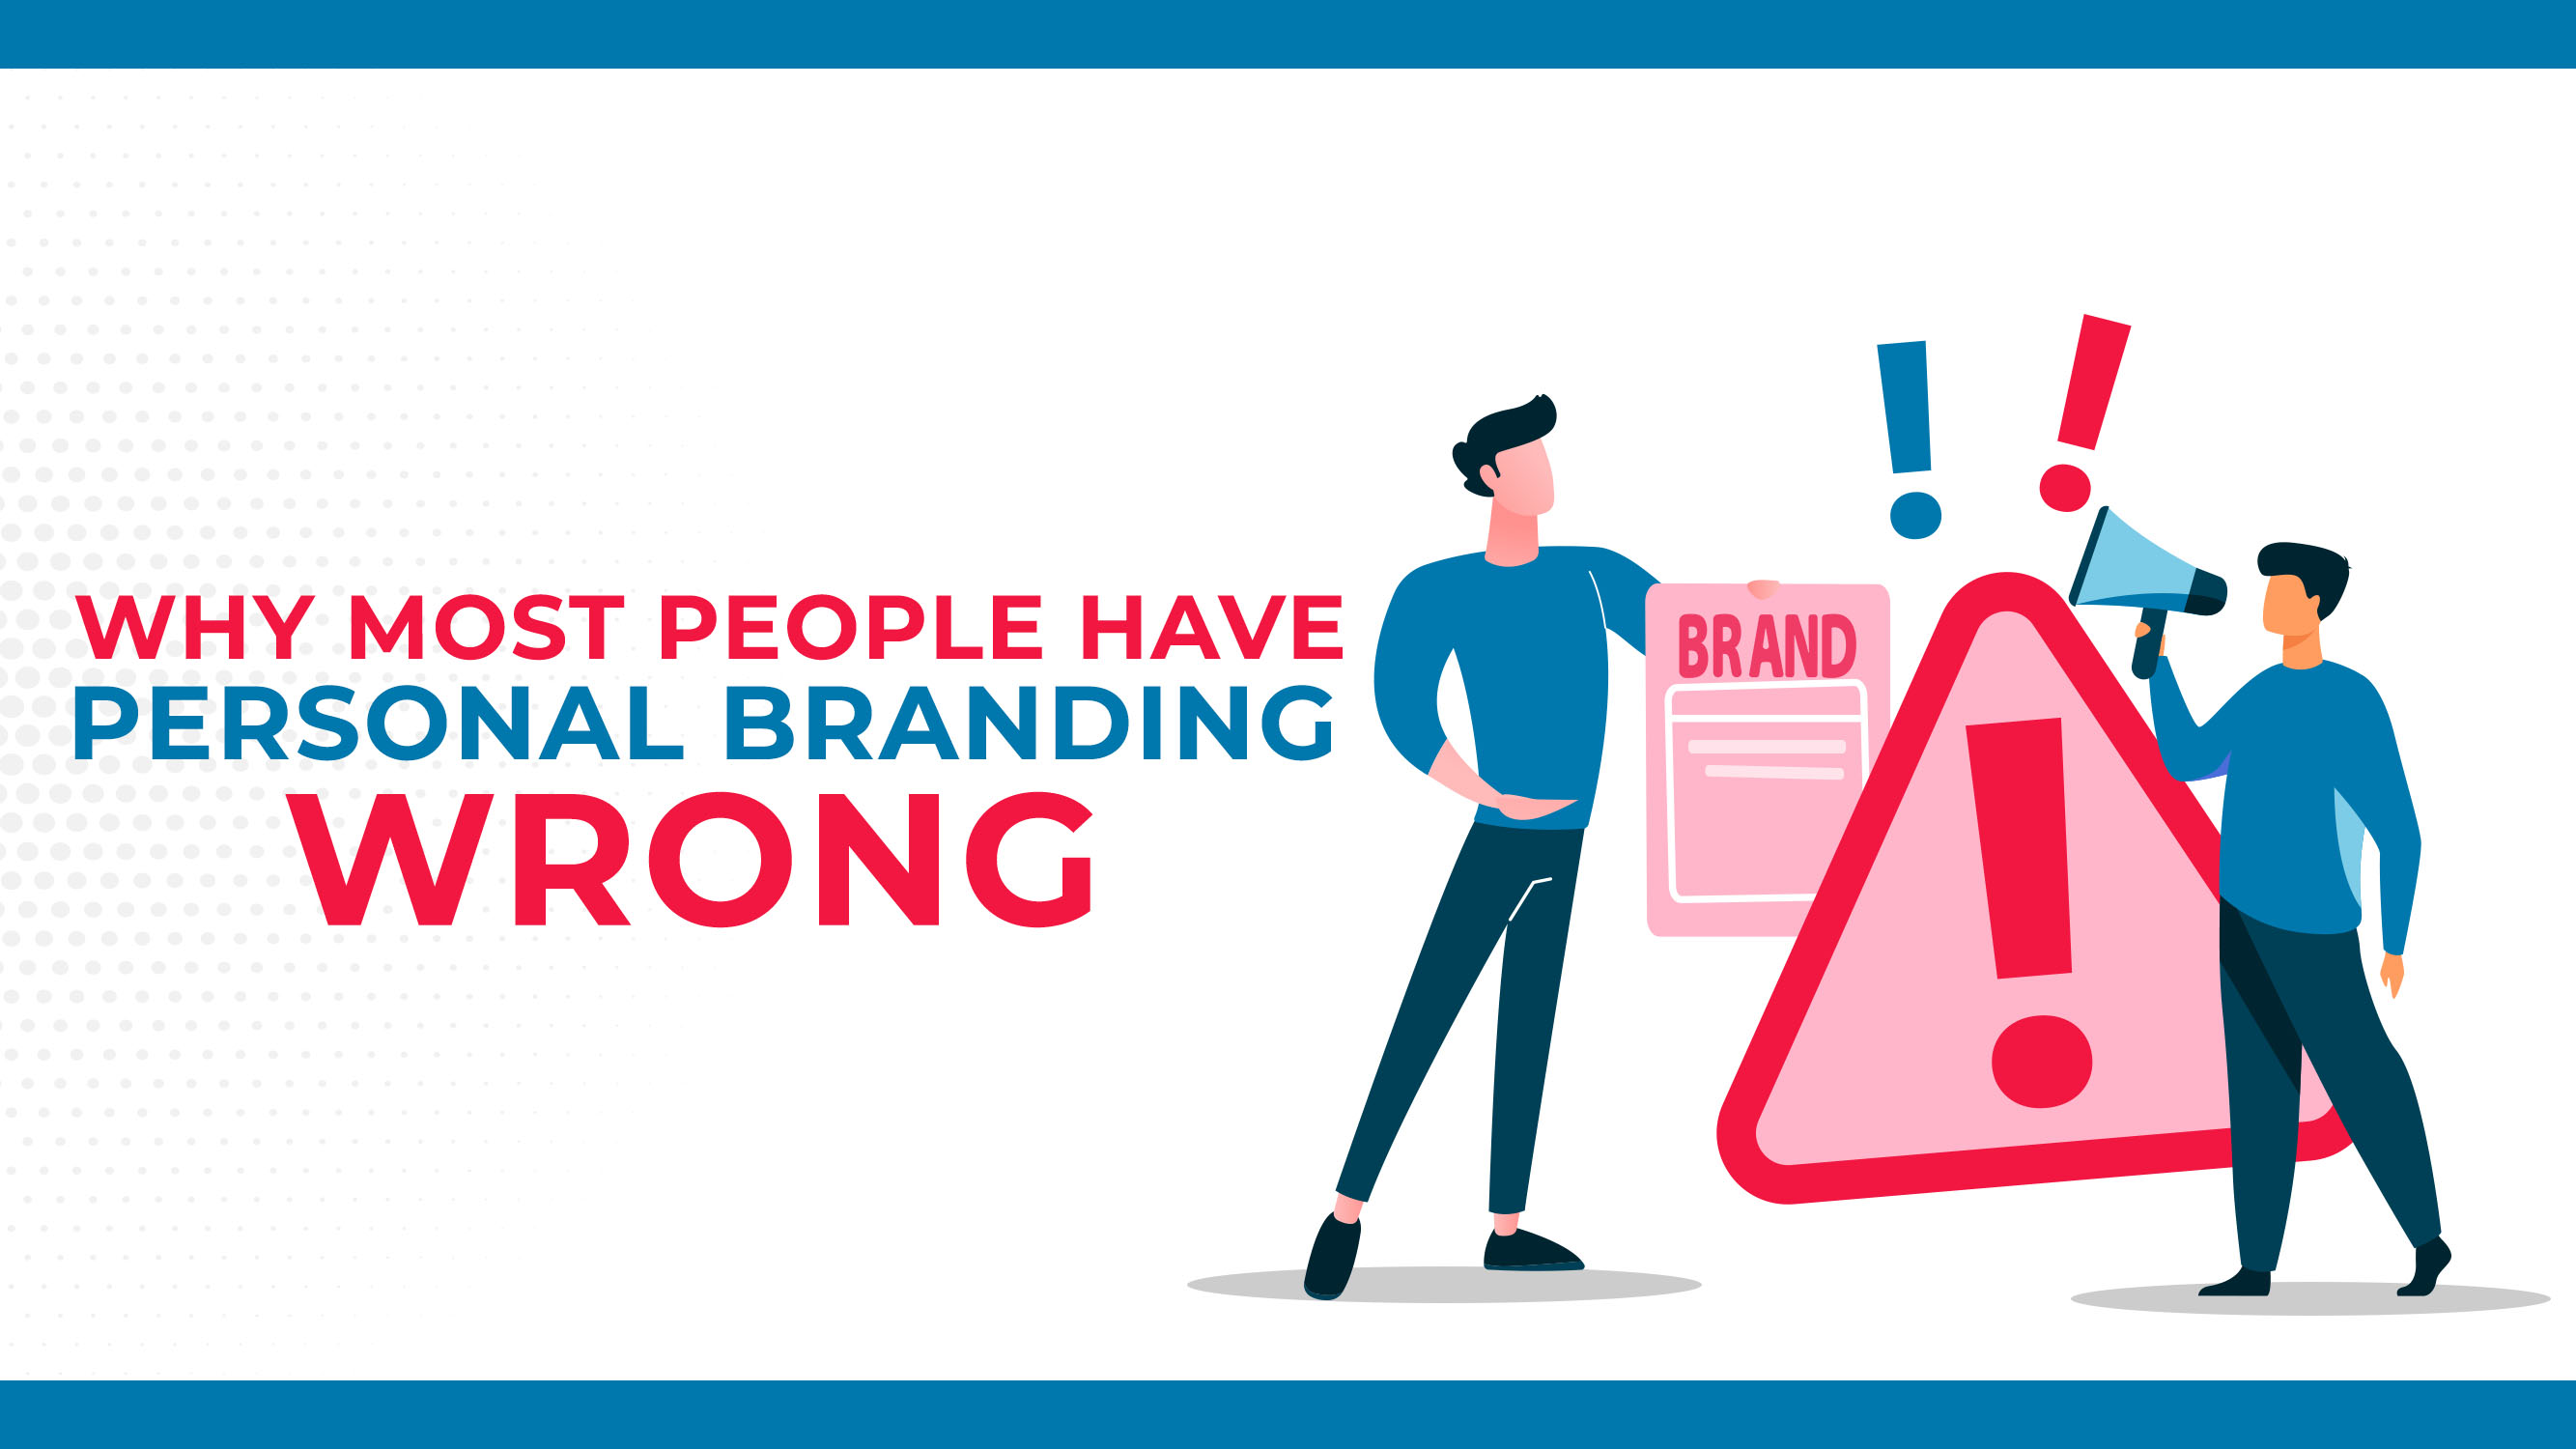 Why Most People Have Personal Branding Wrong